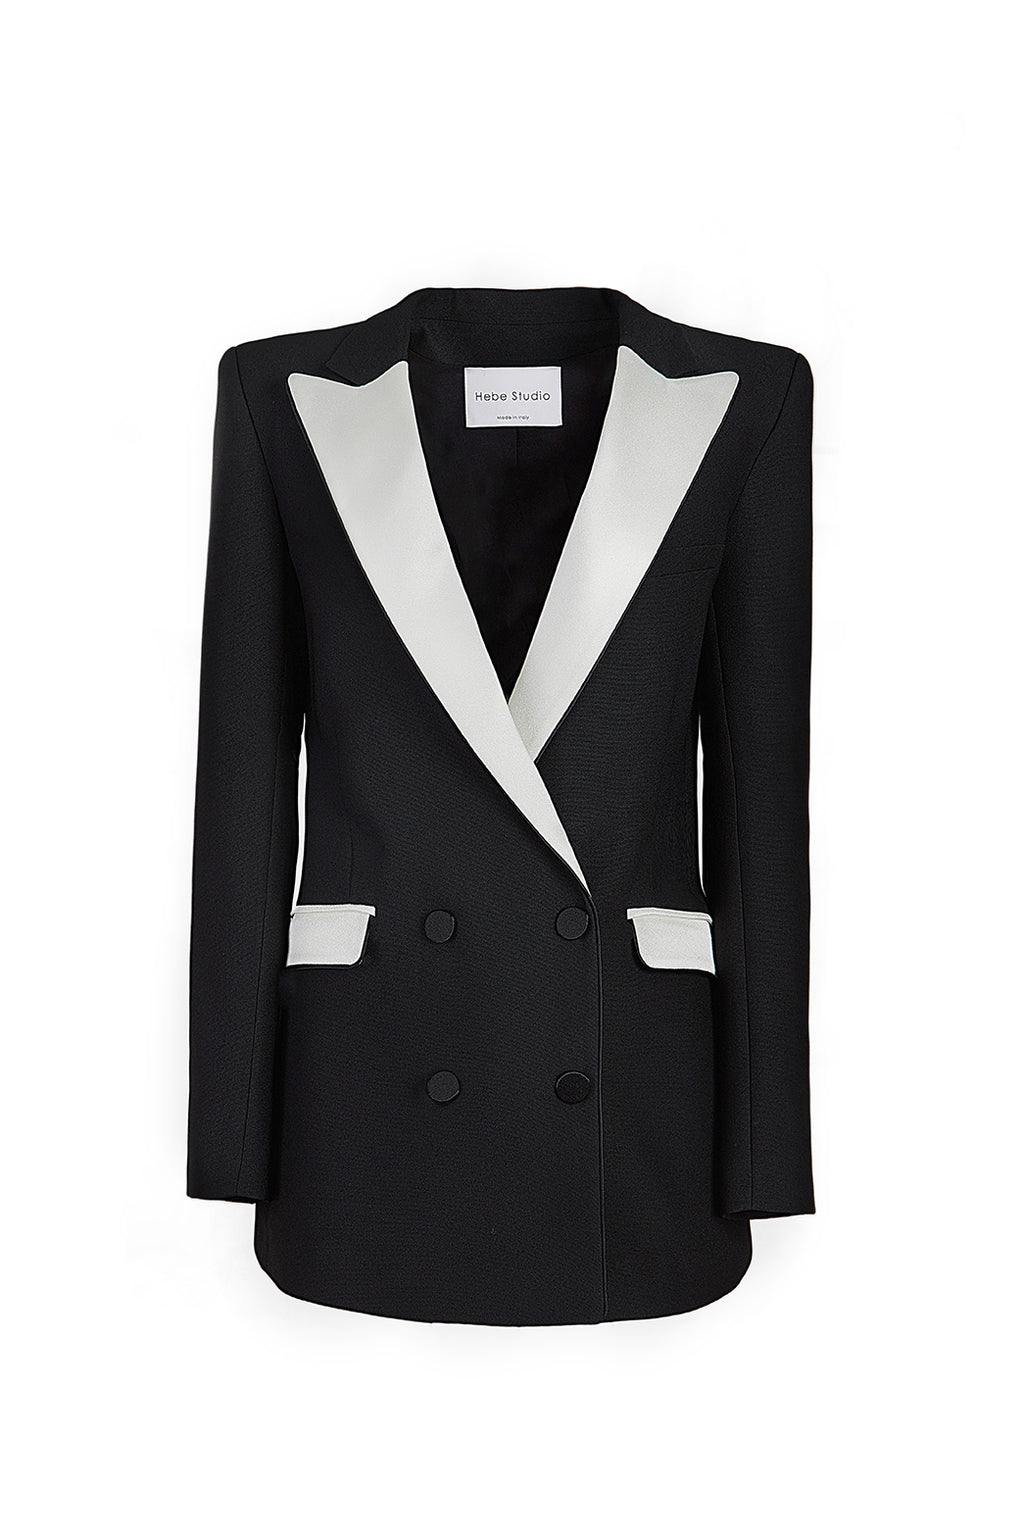 The Black & Cream Bianca Blazer